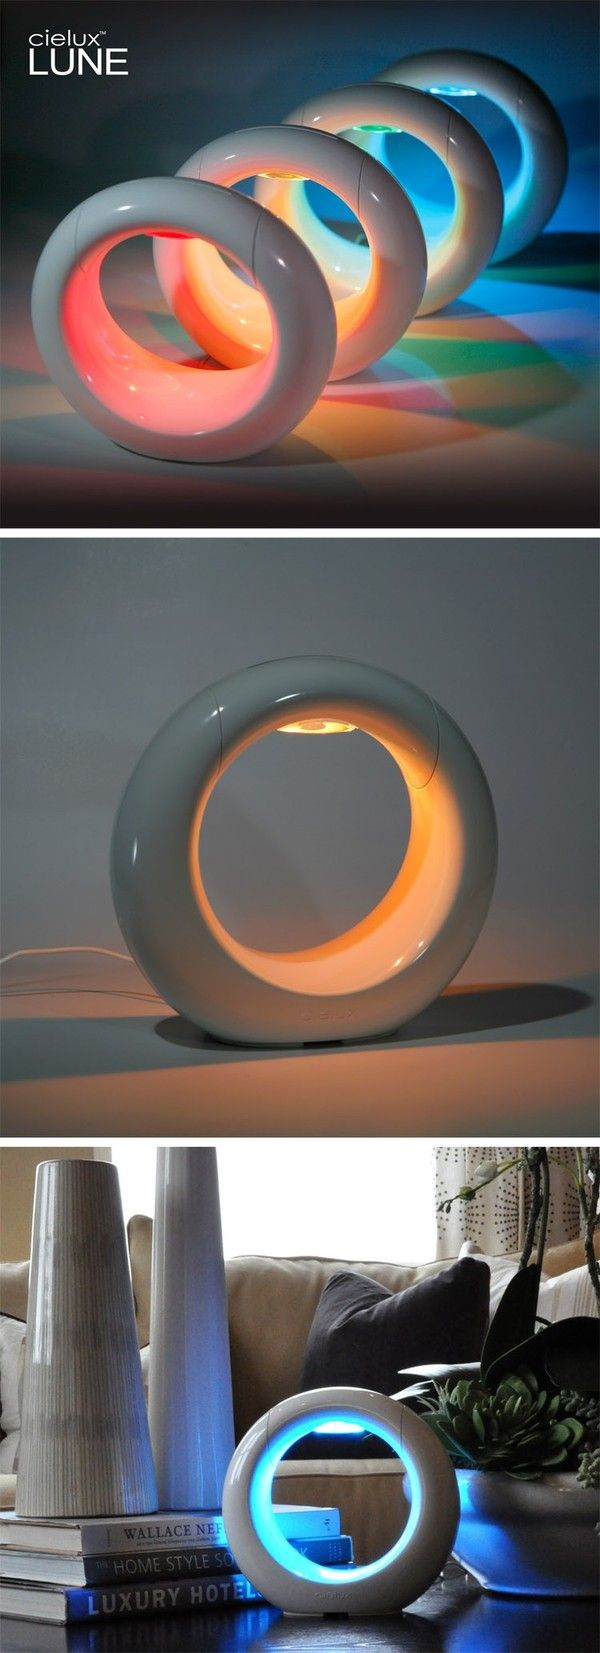 Futuristic Lamp, Cielux LUNE Touch Controlled Color Changing RGB LED Mood Light, Futuristic Interior